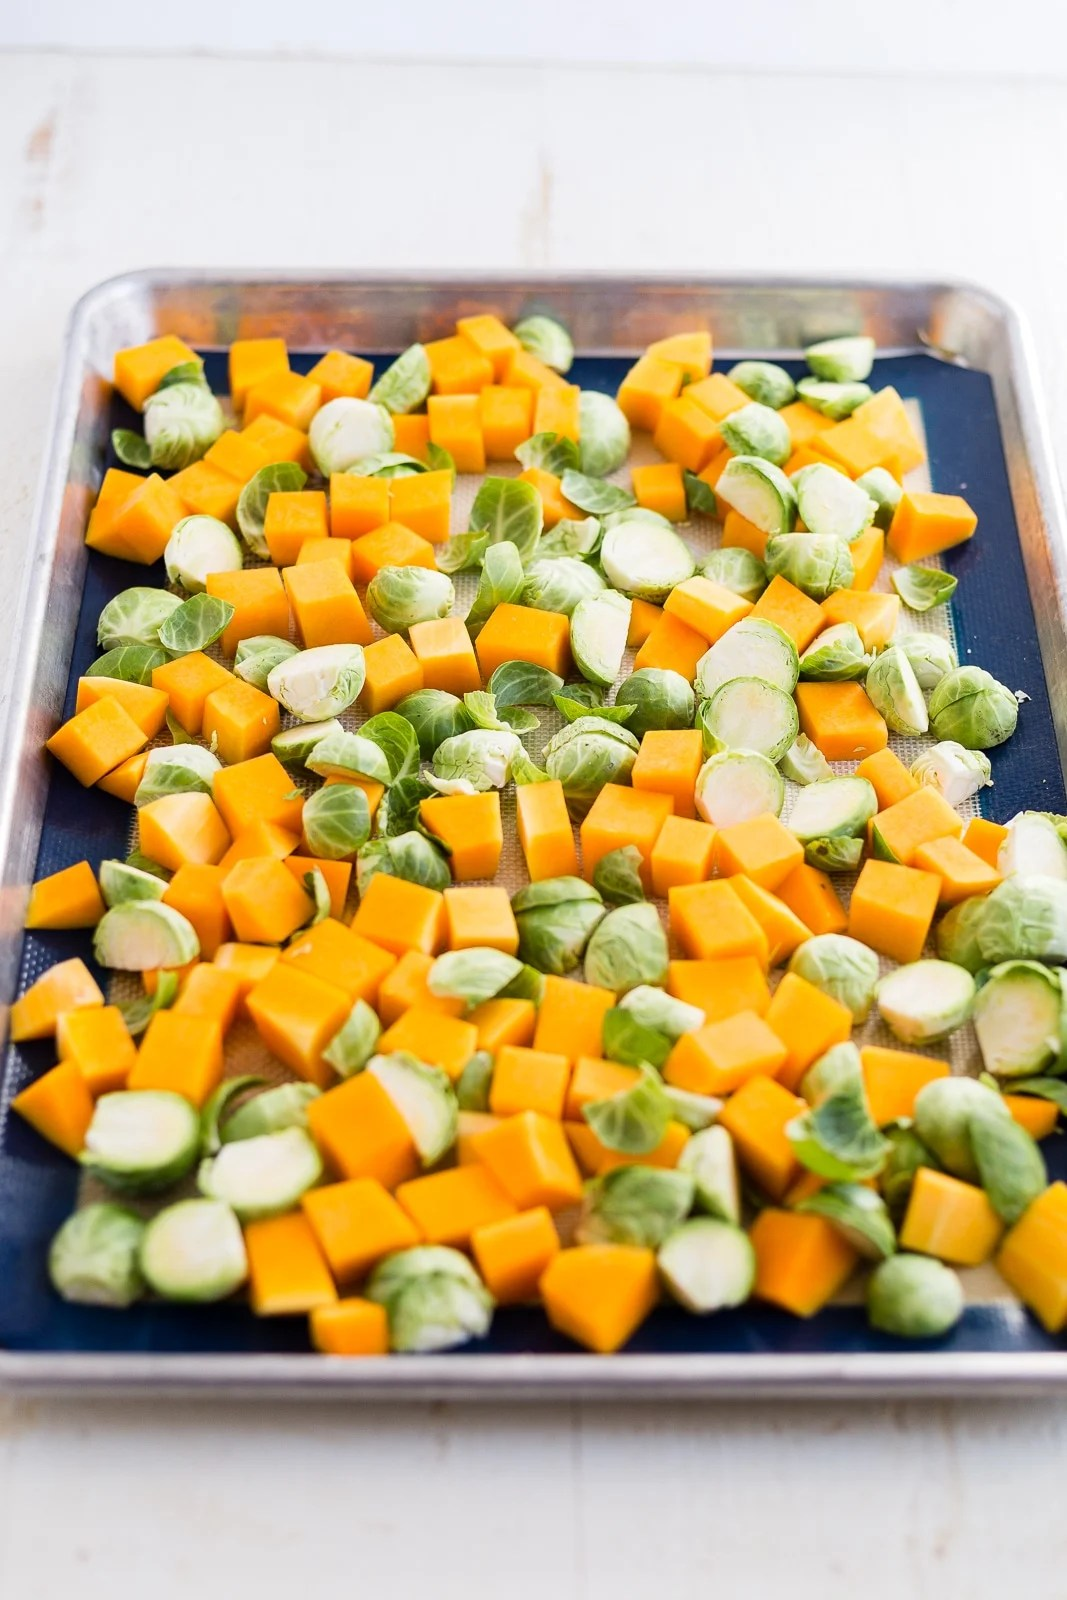 brussel sprouts and butternut squash on a sheet pan before roasting